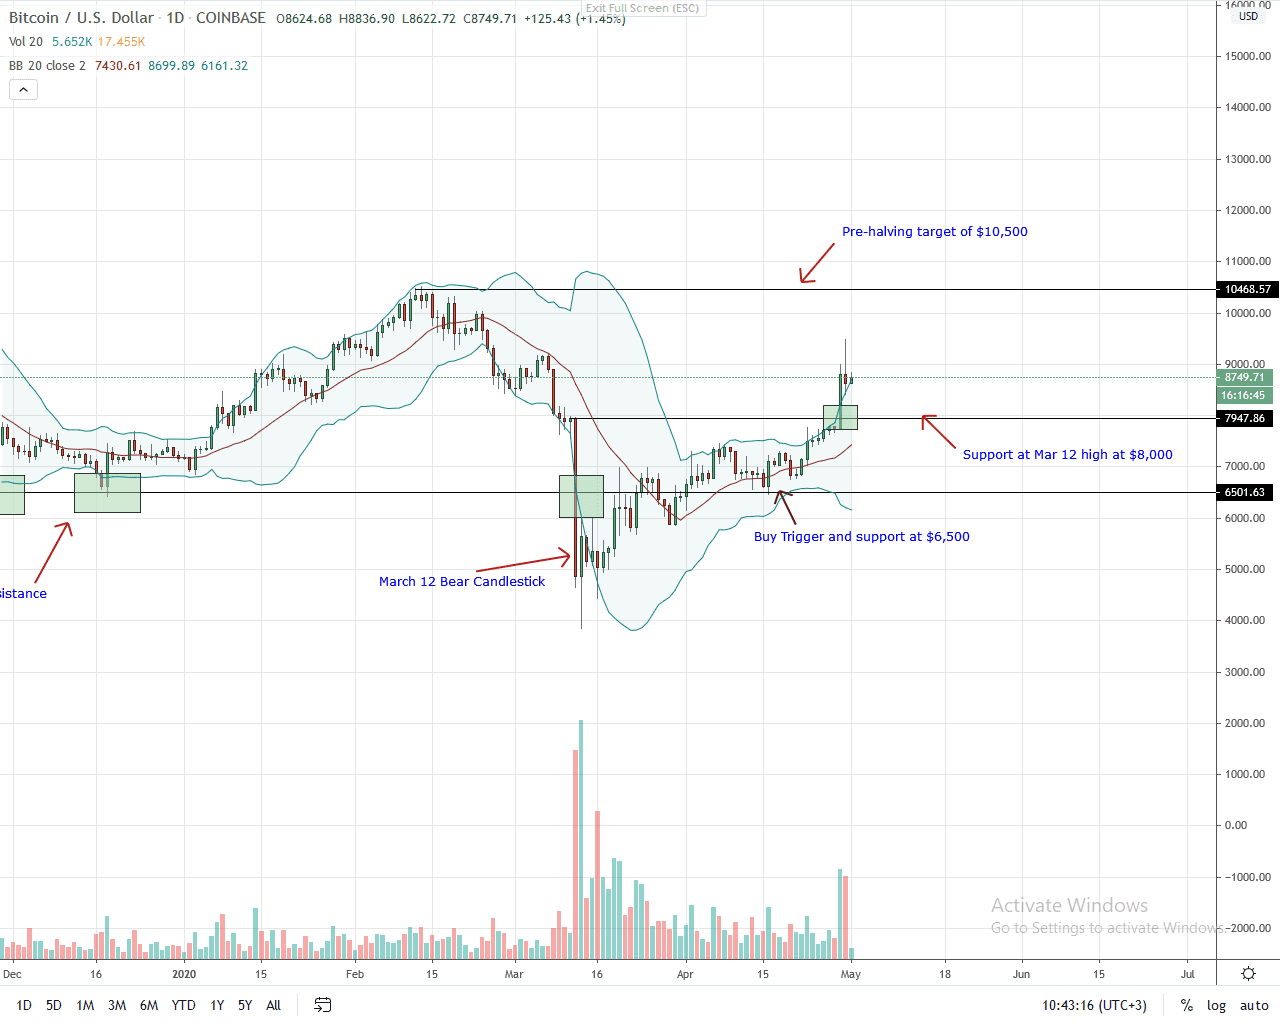 Bitcoin Daily Chart for May 1